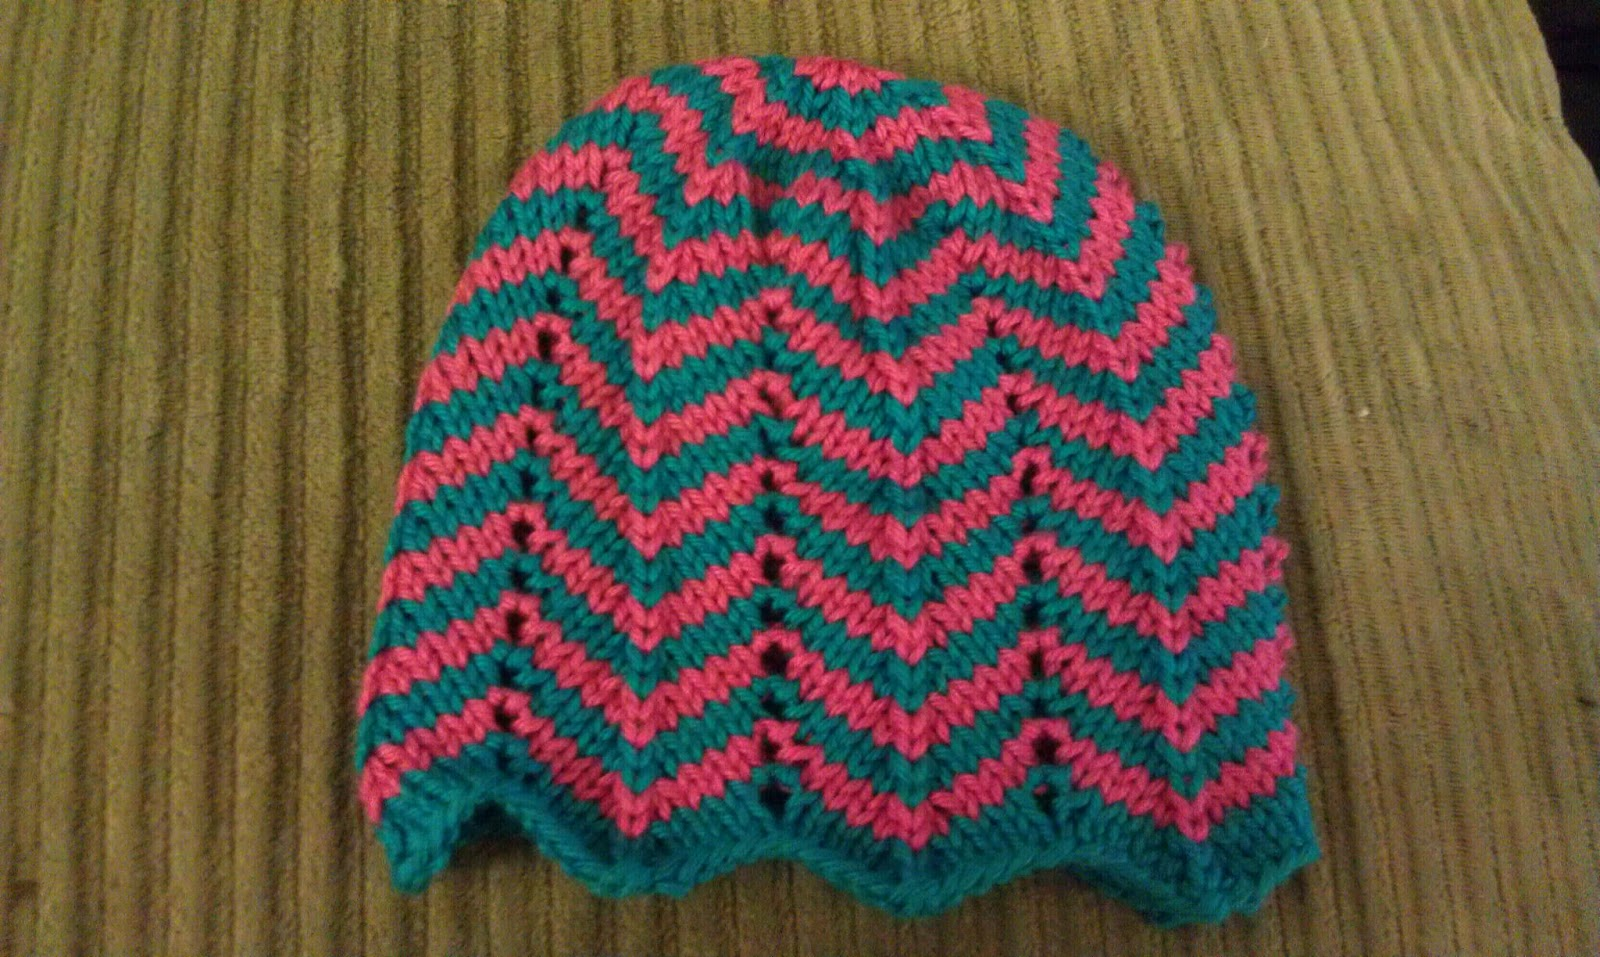 Get How To Knit A Baby Hat With Circular Needles Knitting 3c5c1 Fa154